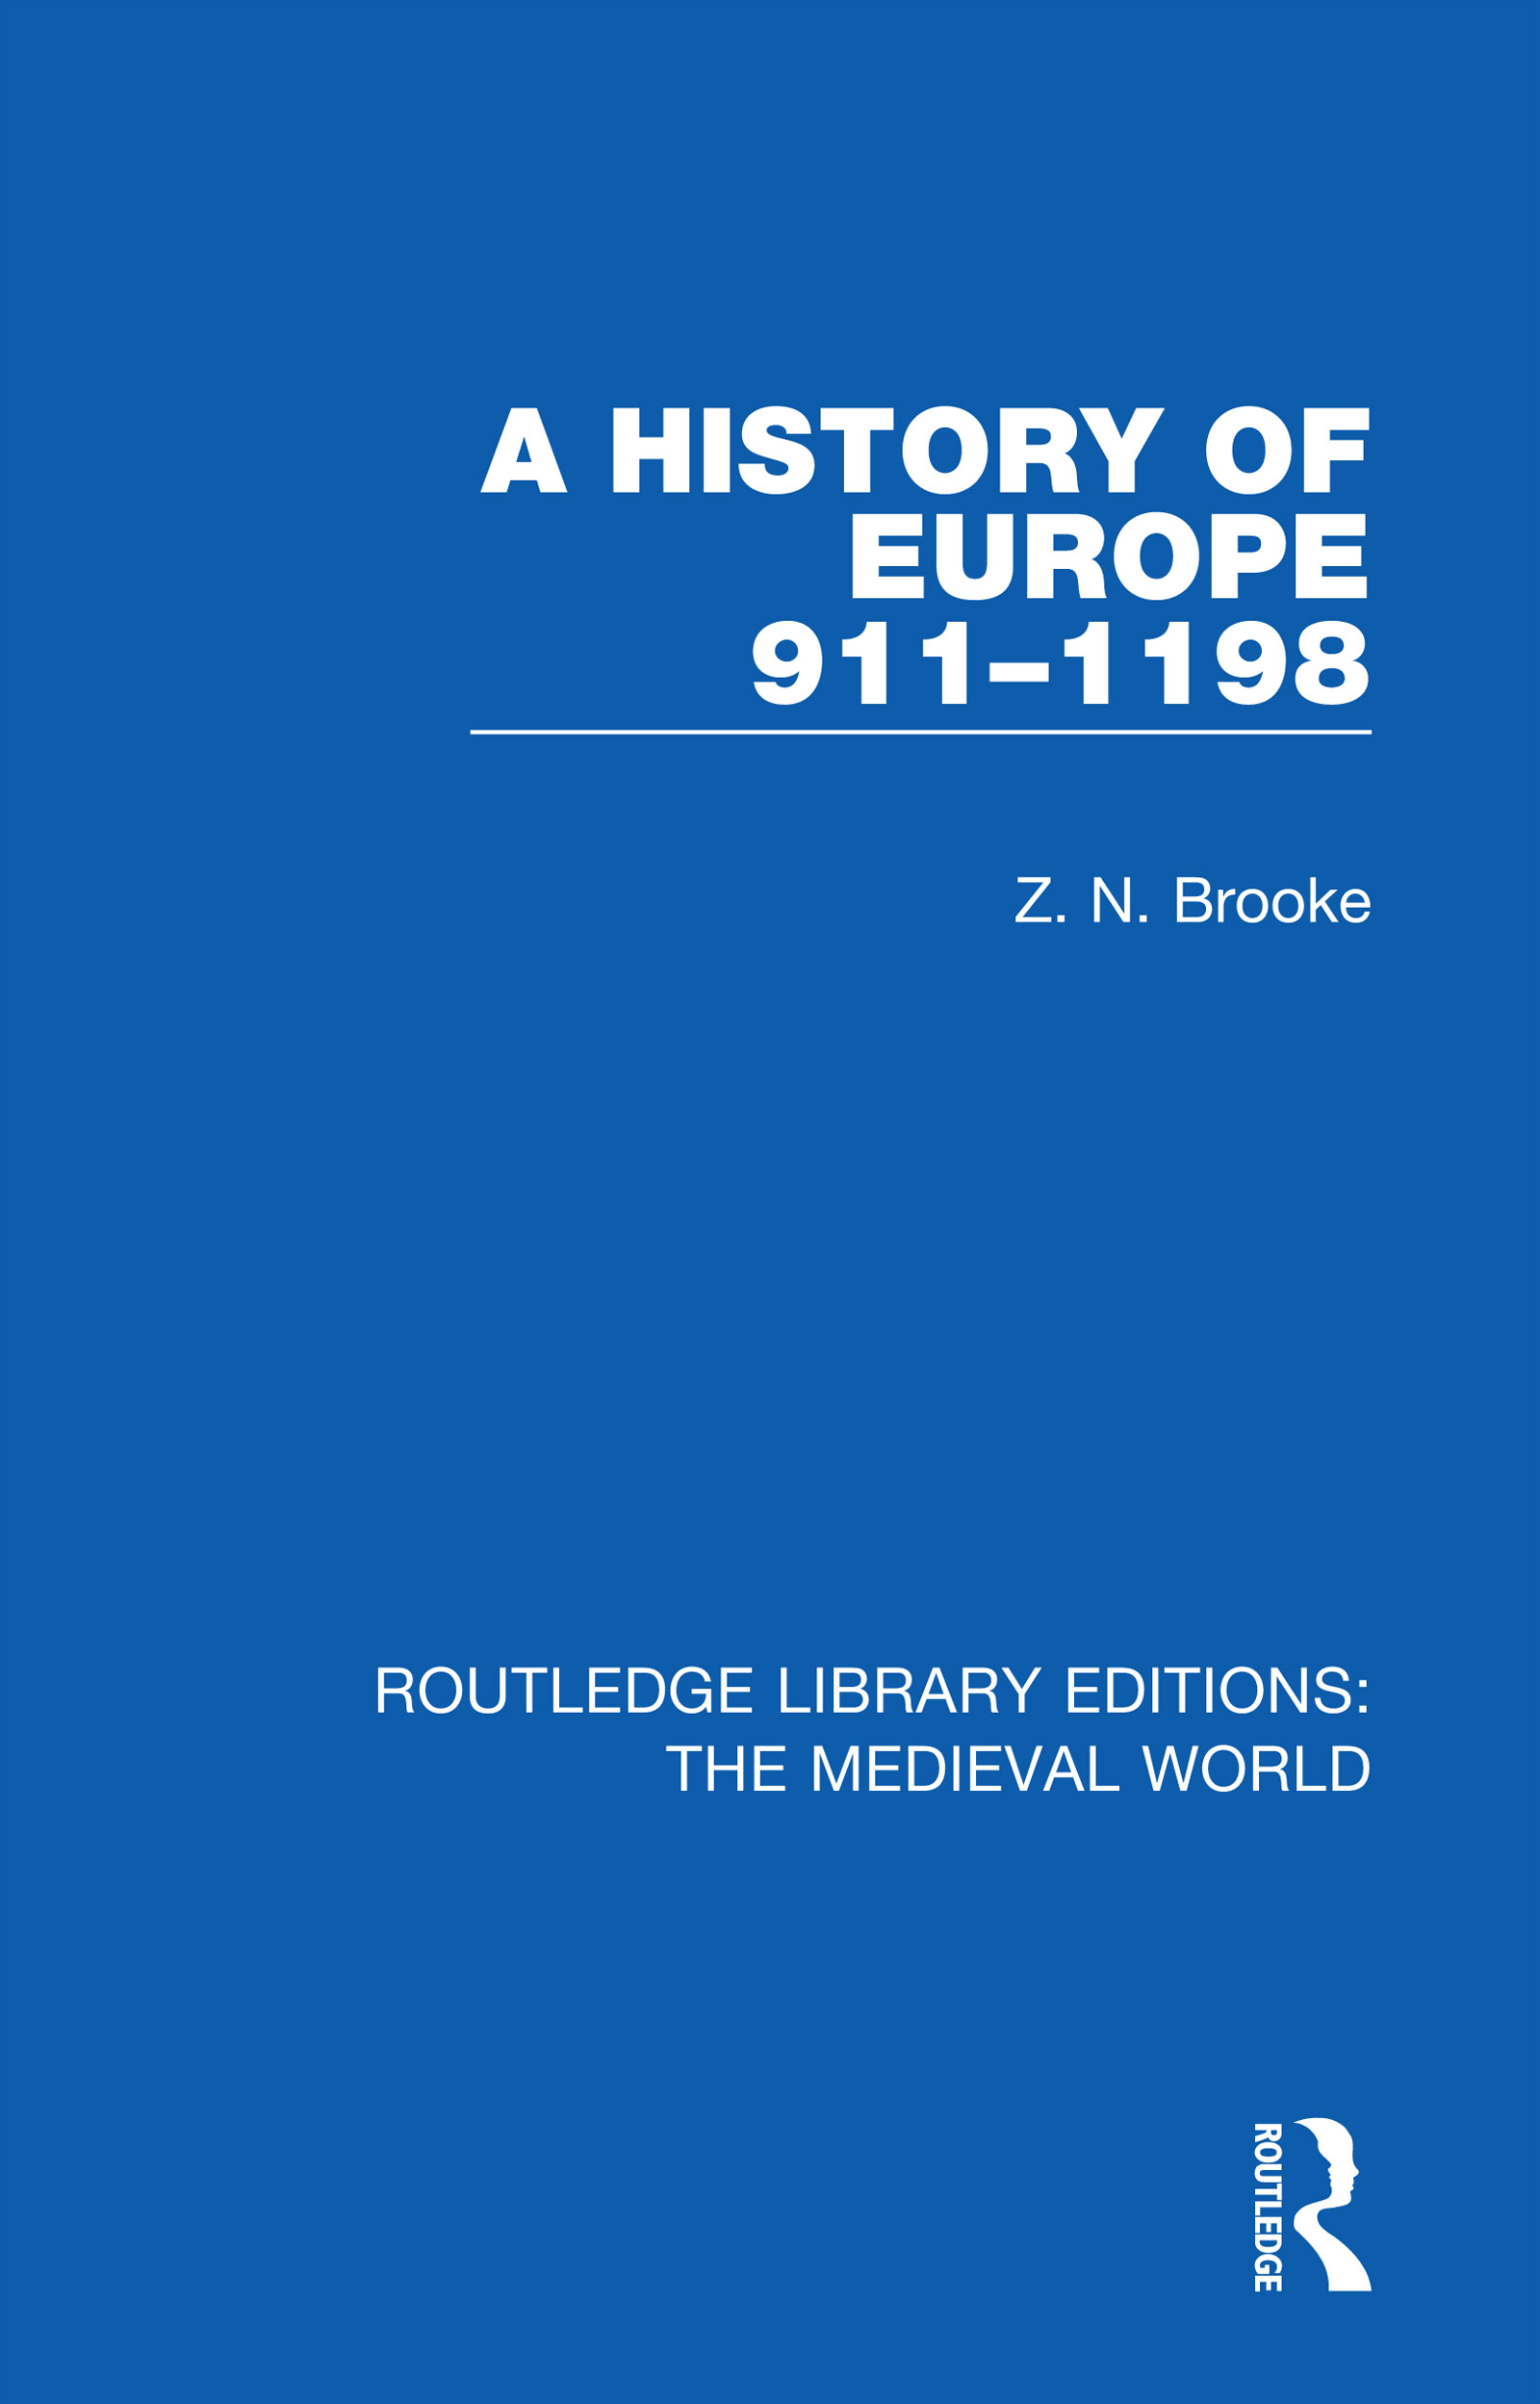 A History of Europe 911-1198